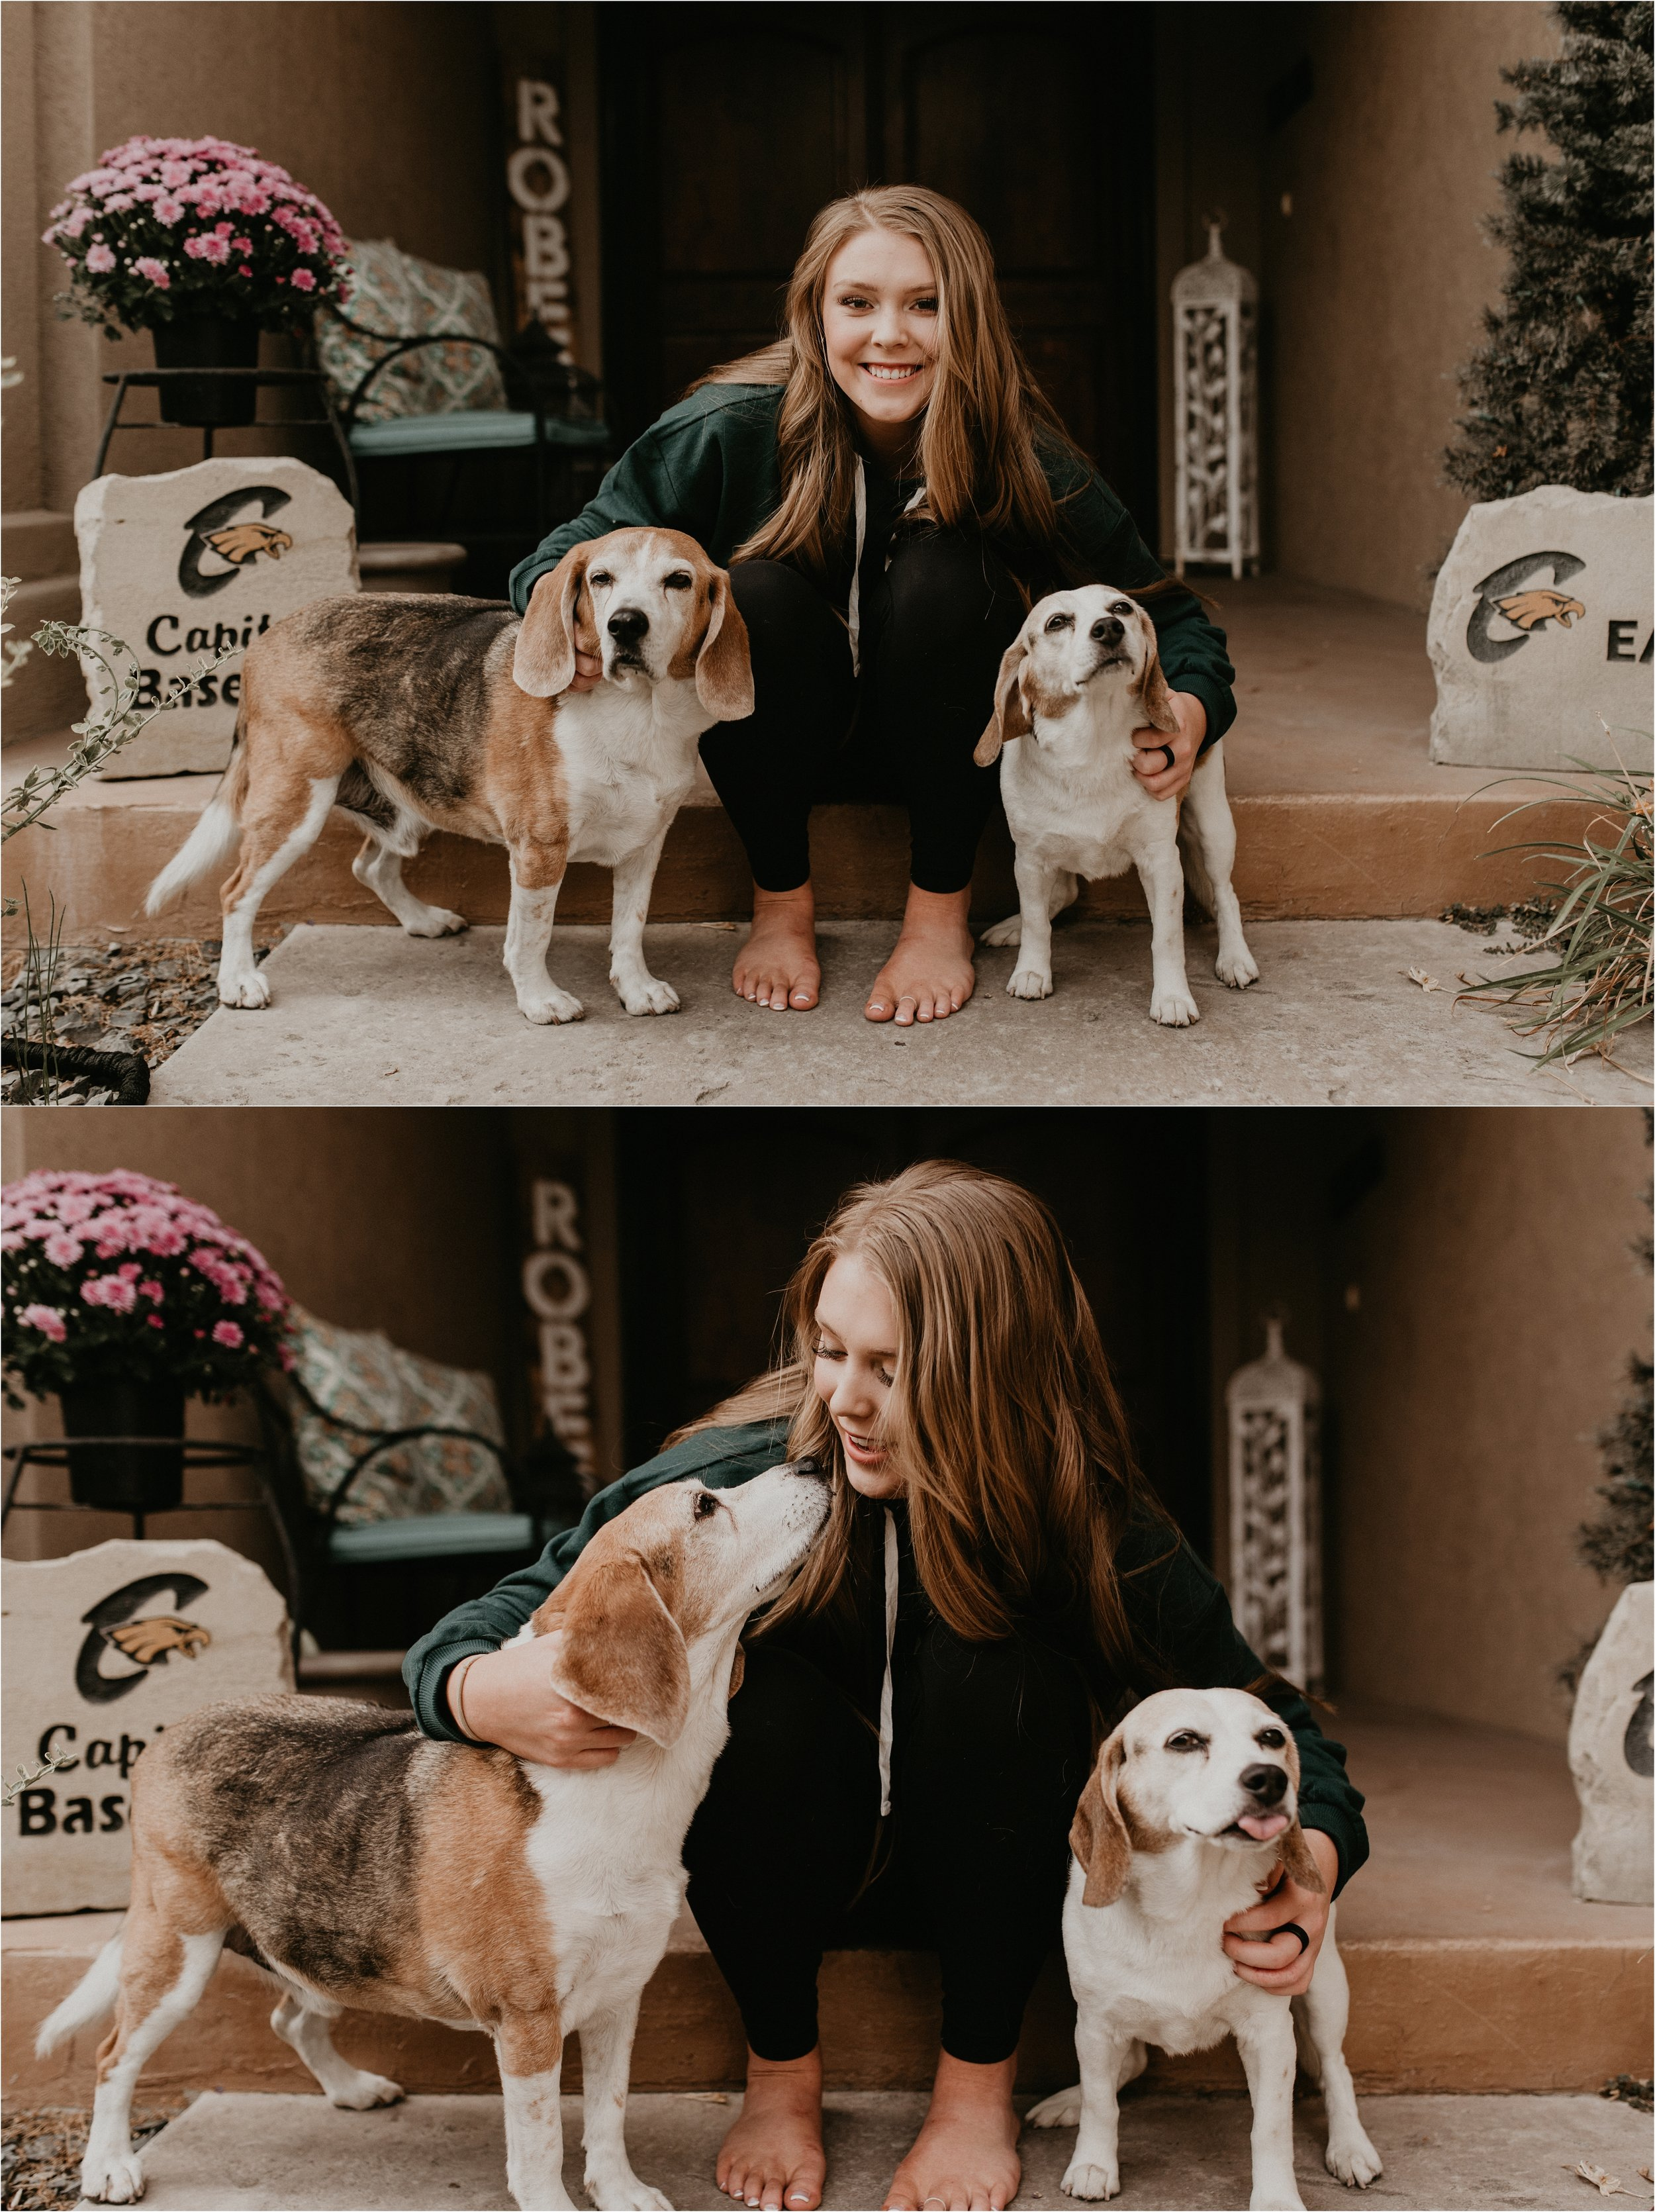 Boise Senior Photographers Makayla Madden Photography Idaho Senior Photographer Senior Girl Dogs Beagles Senior Pictures